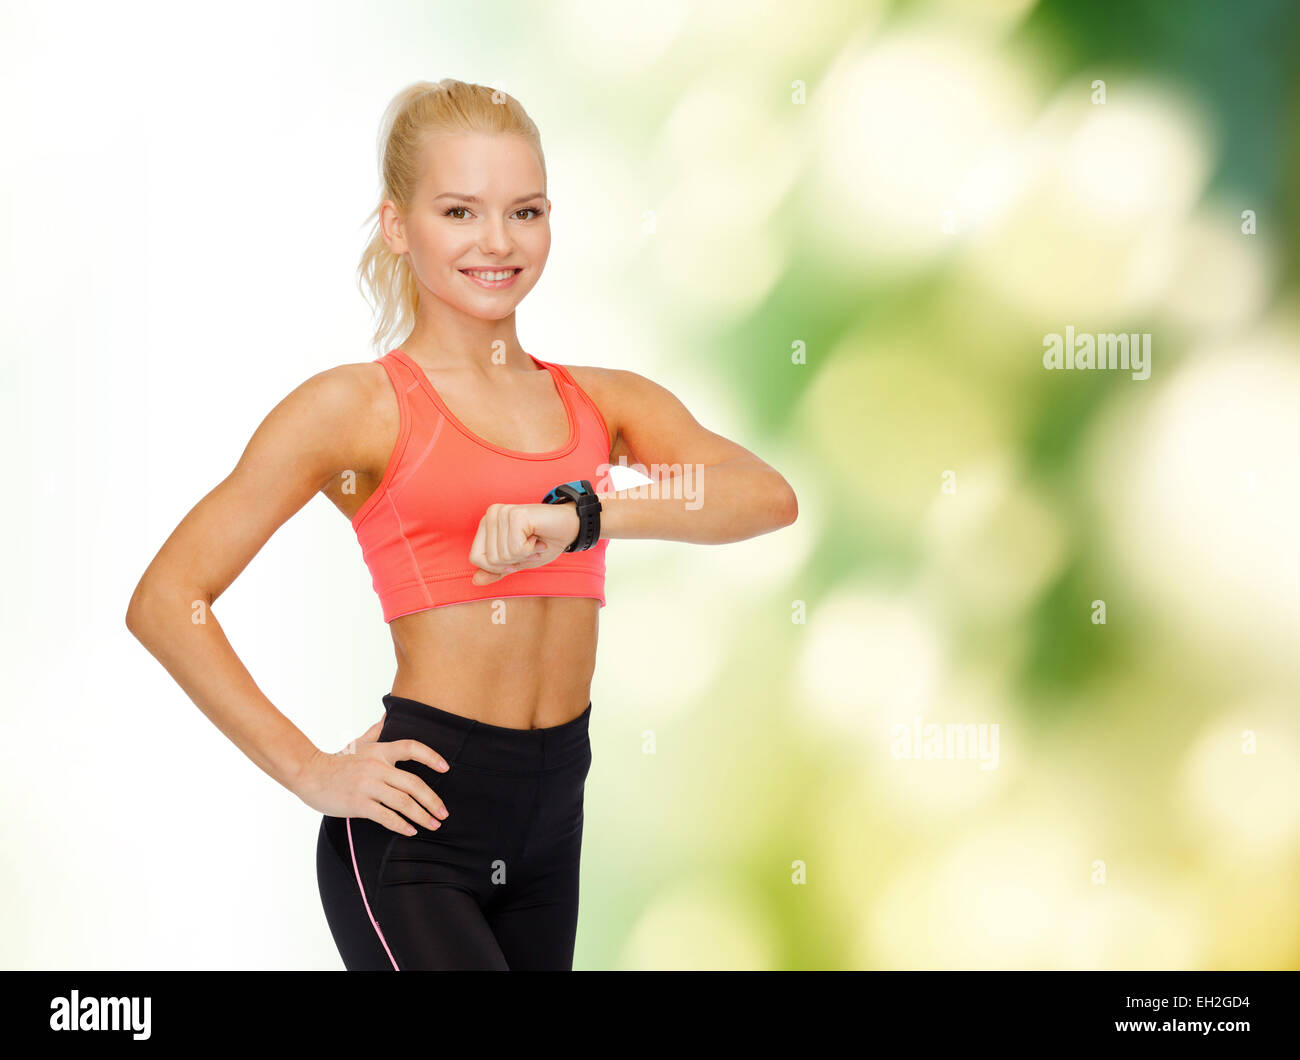 smiling woman with heart rate monitor on hand - Stock Image